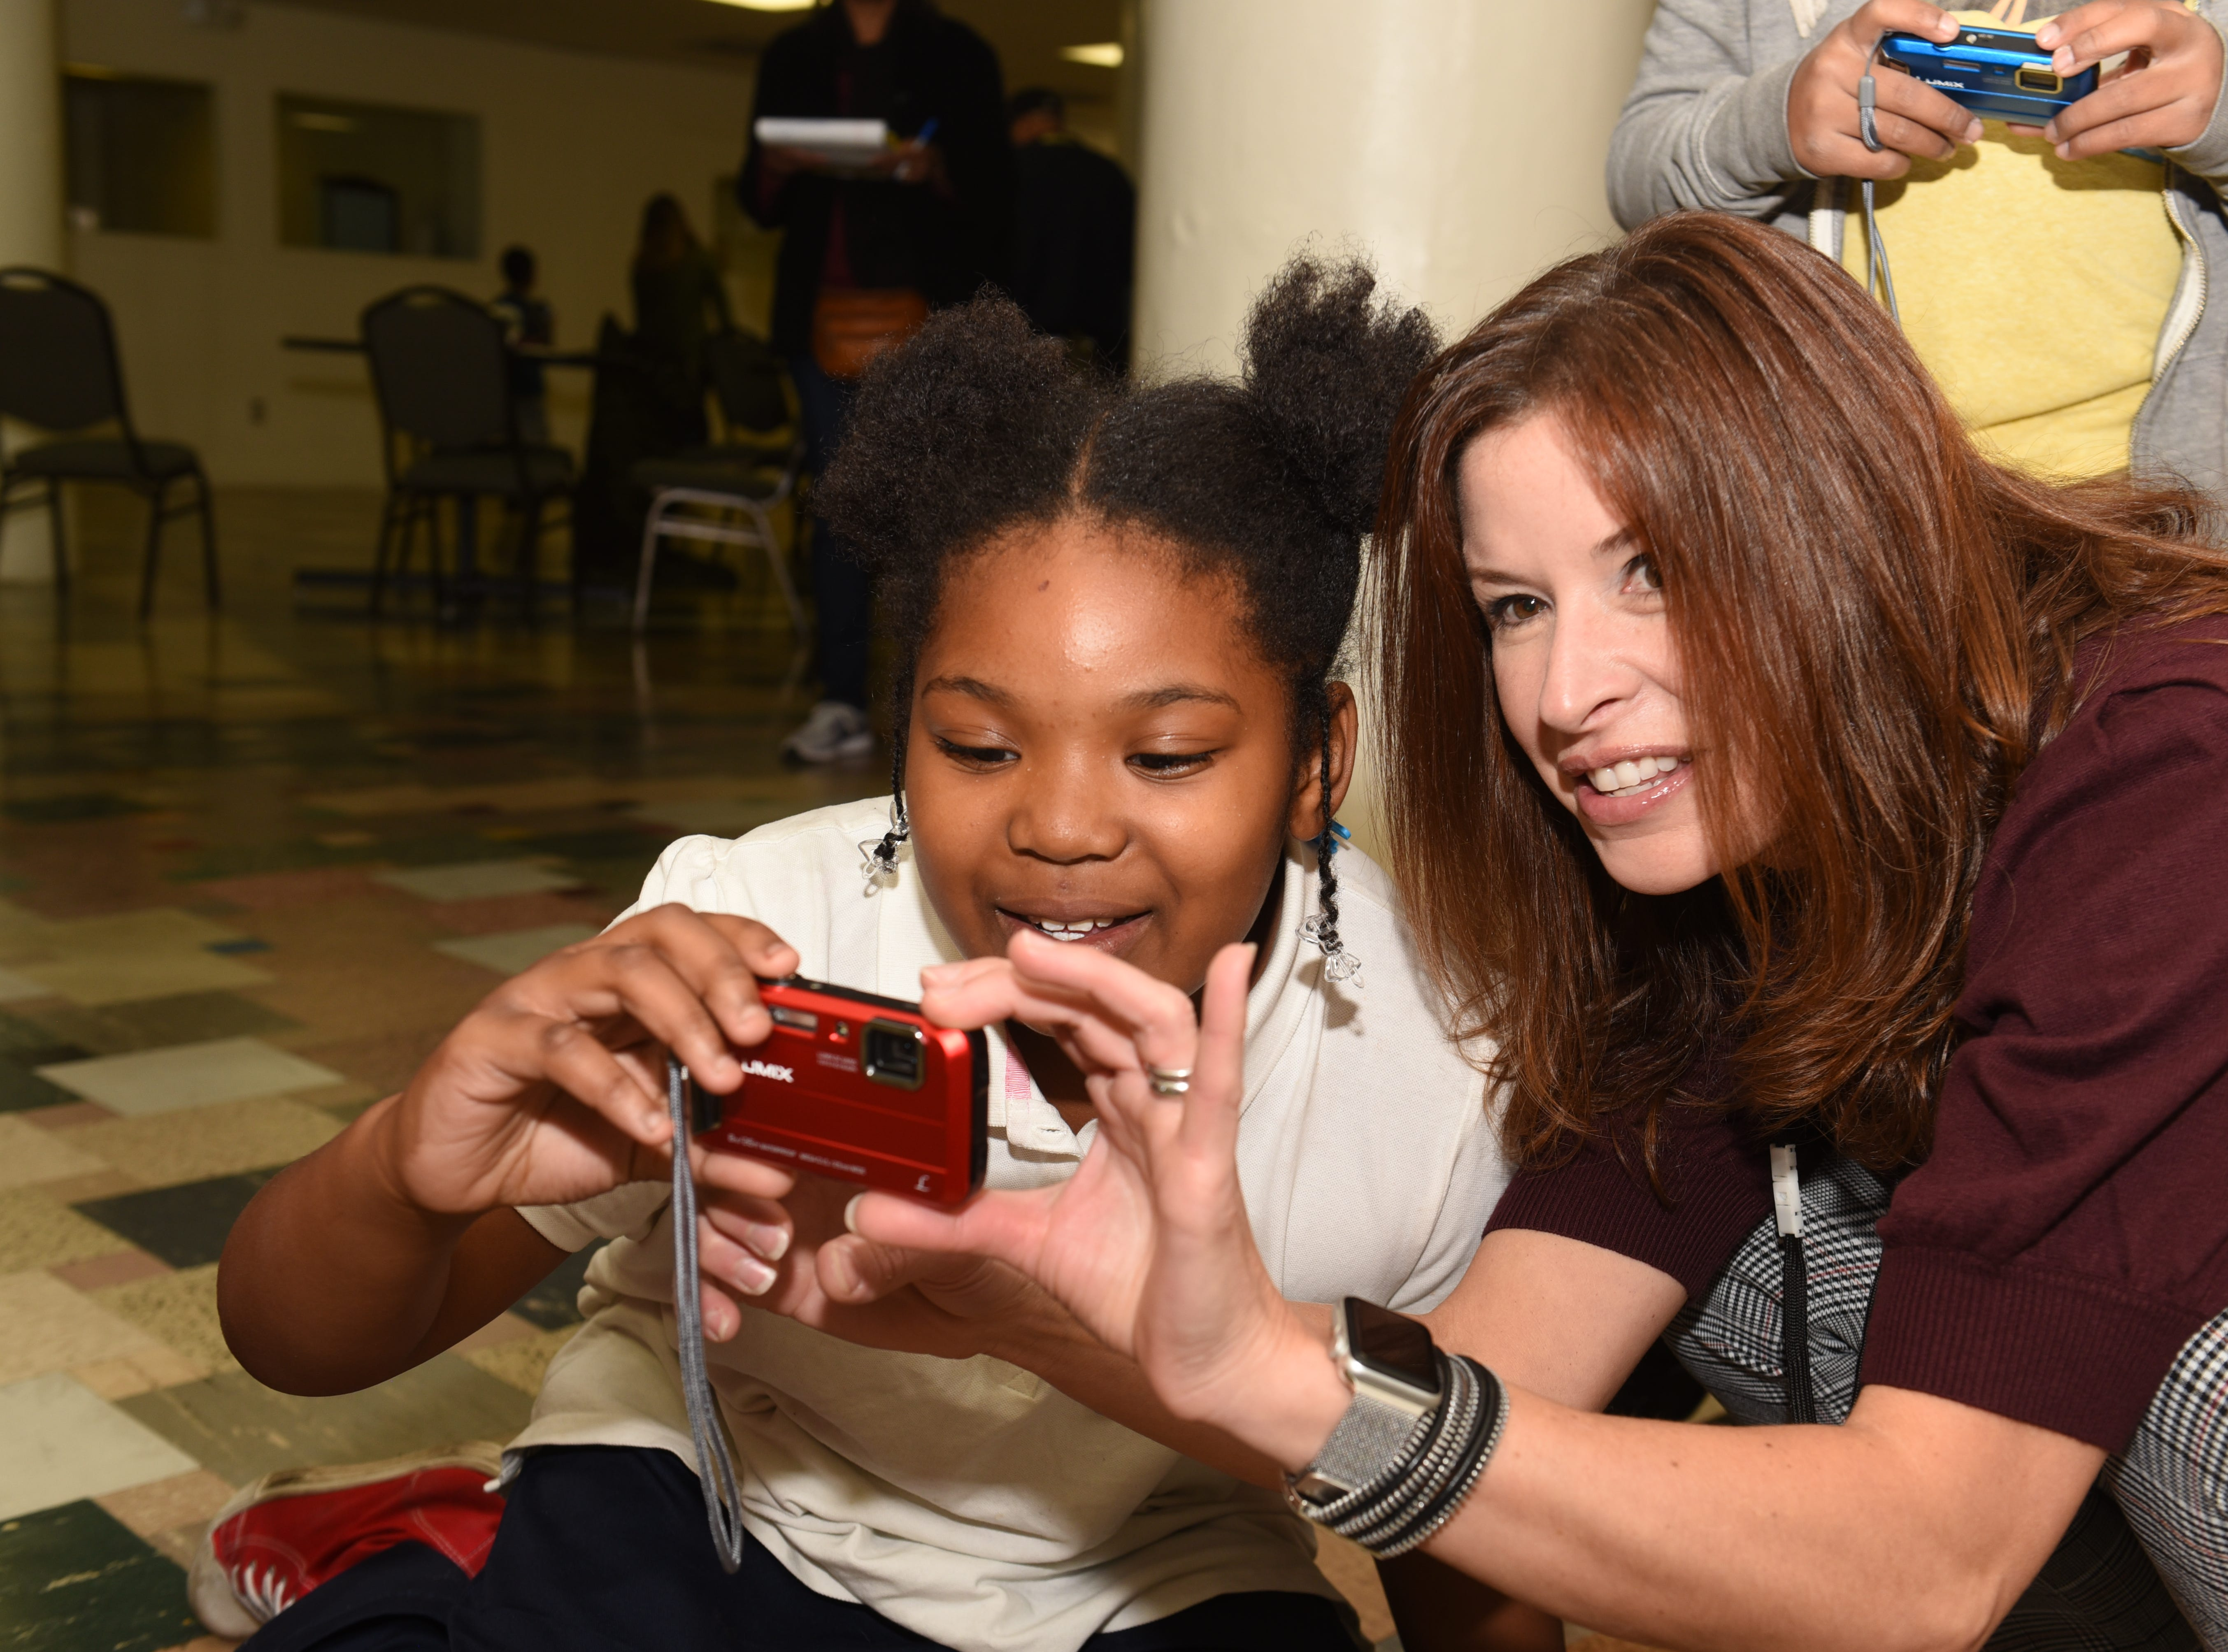 Fox 2 reporter Amy Lange (right) works with Nhyrasia S.  during a photography lesson by Linda Solomon in Detroit on October 20, 2018.